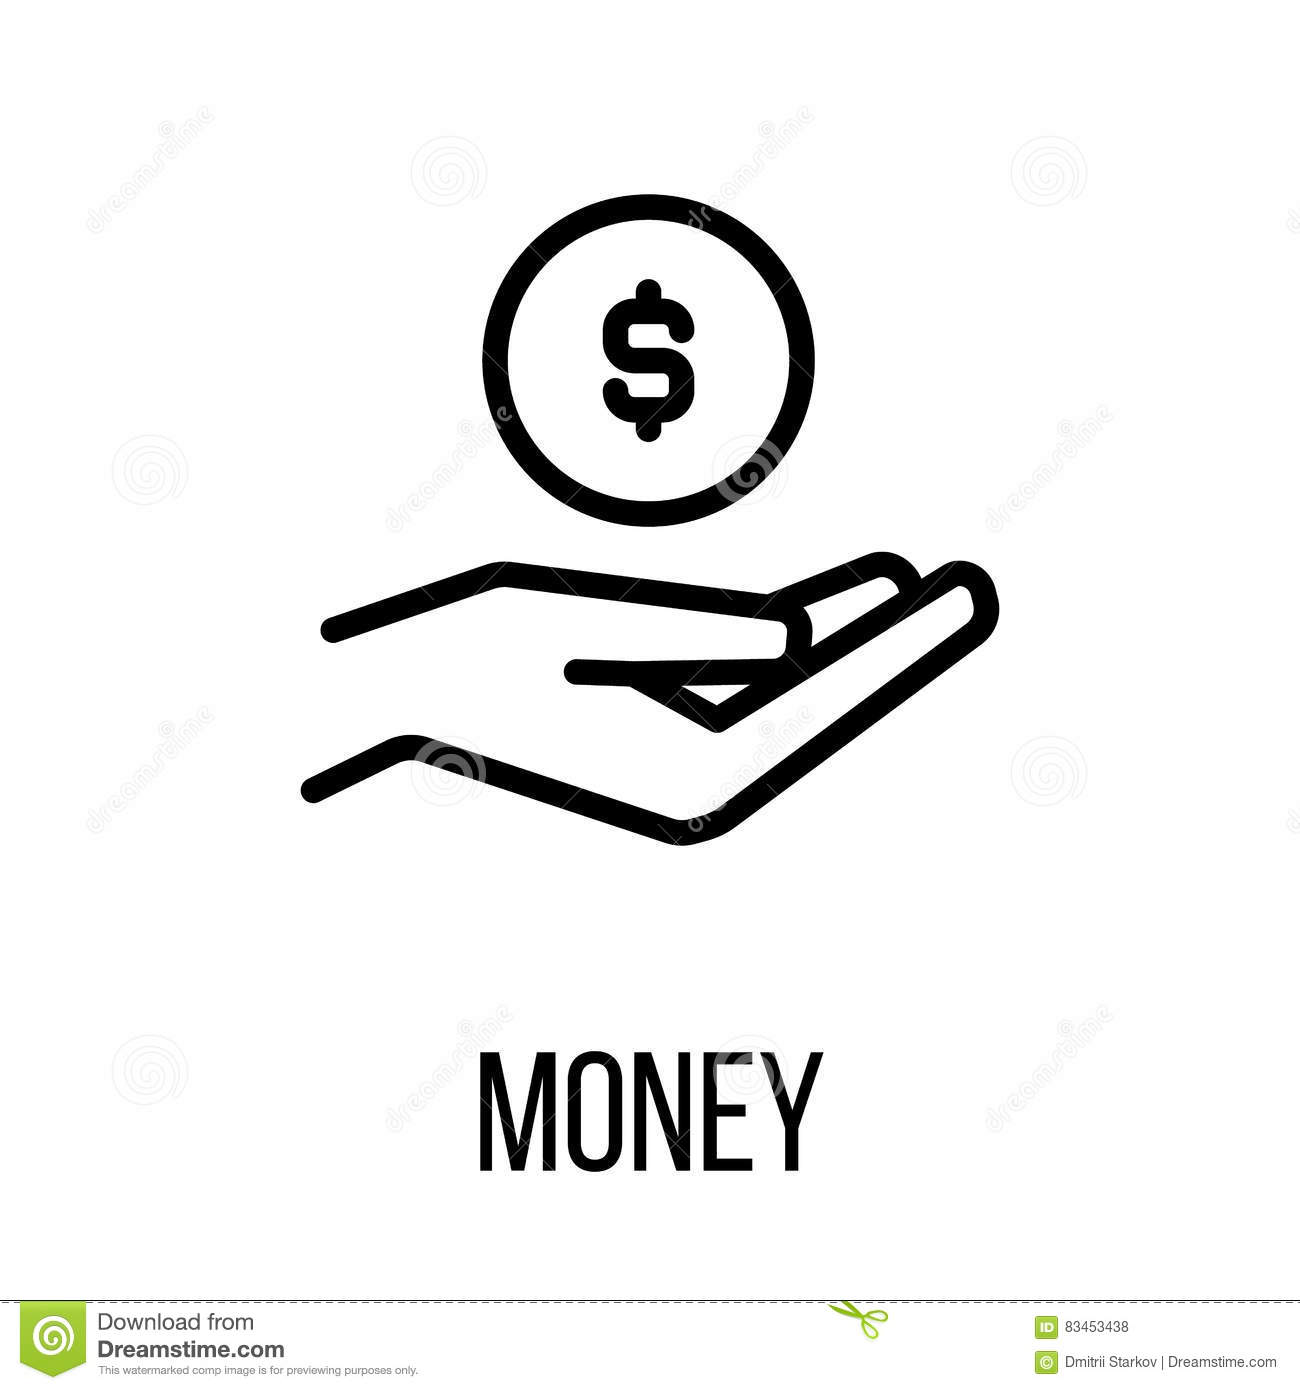 Vector Drawing Lines App : Money icon or logo in modern line style stock vector